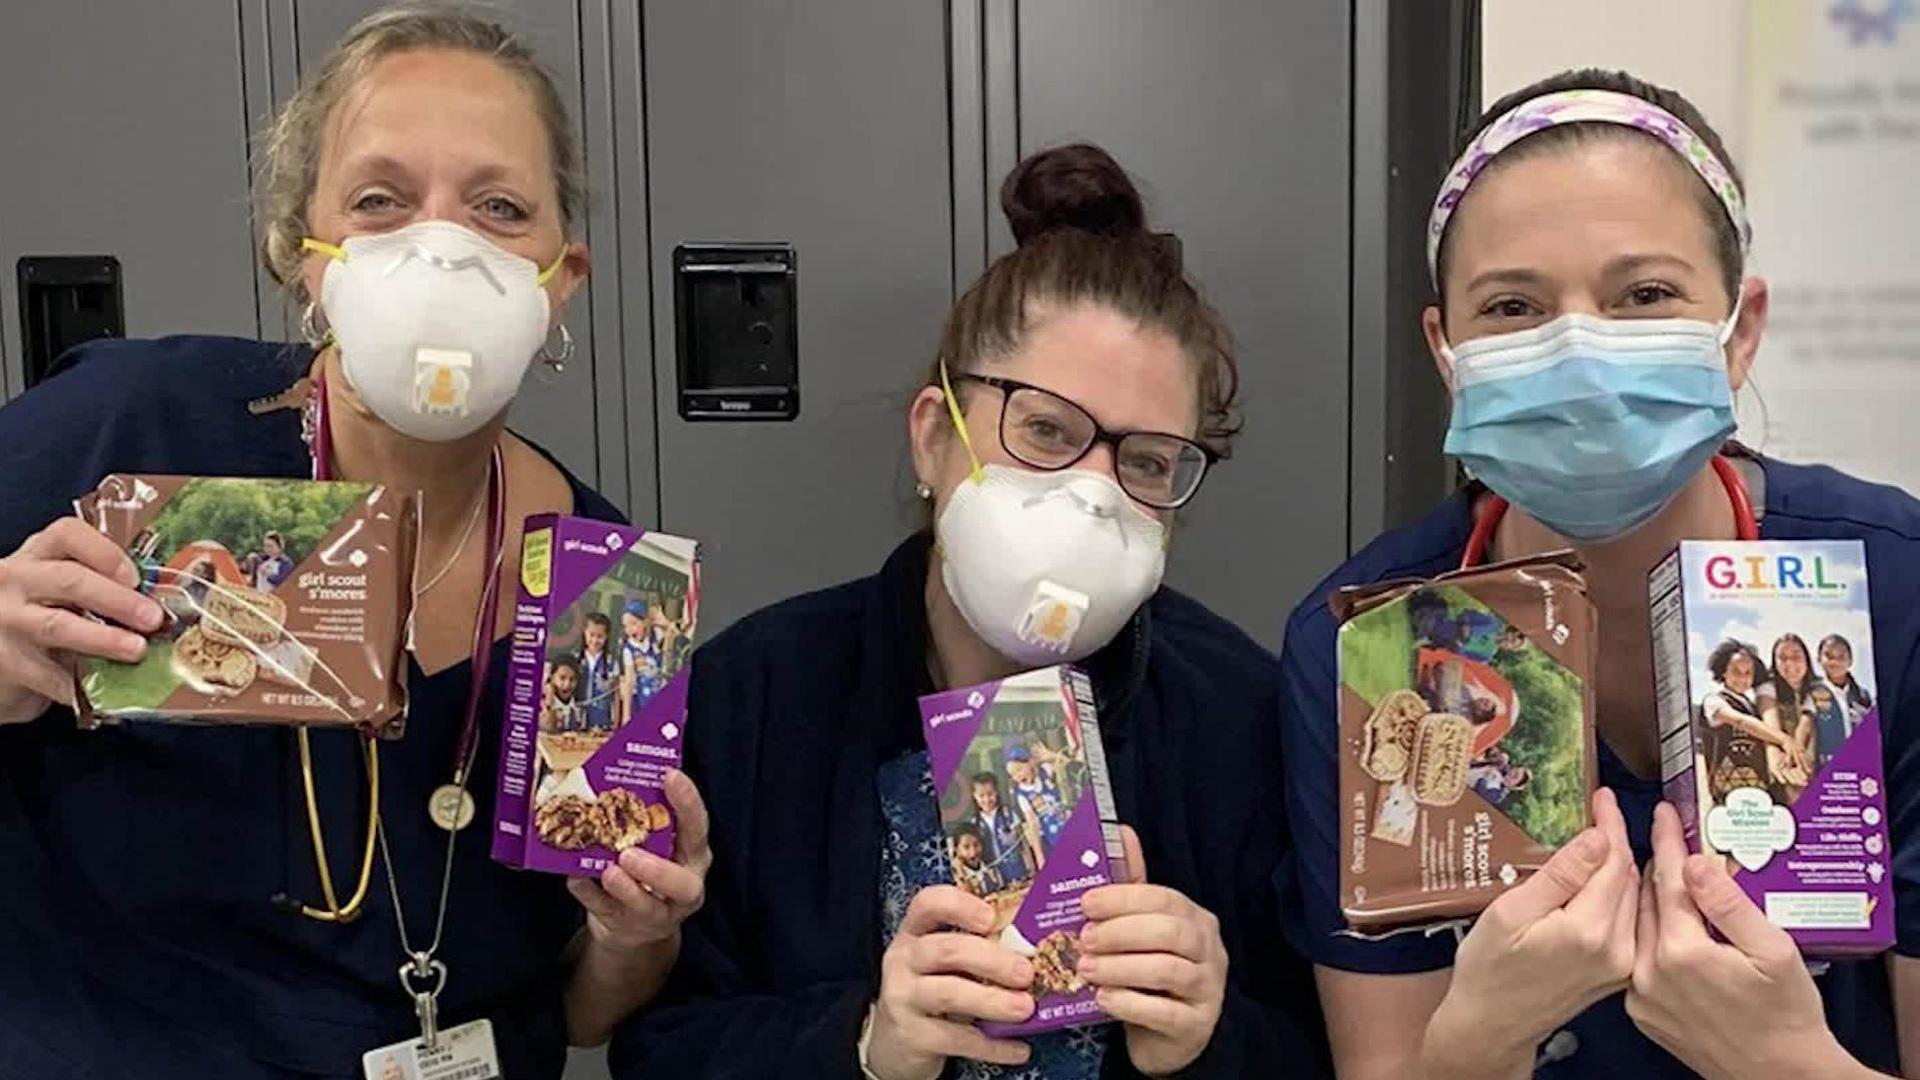 Girl Scouts help during the coronavirus crisis in an undated photo. (Girl Scouts of Southern Alabama)